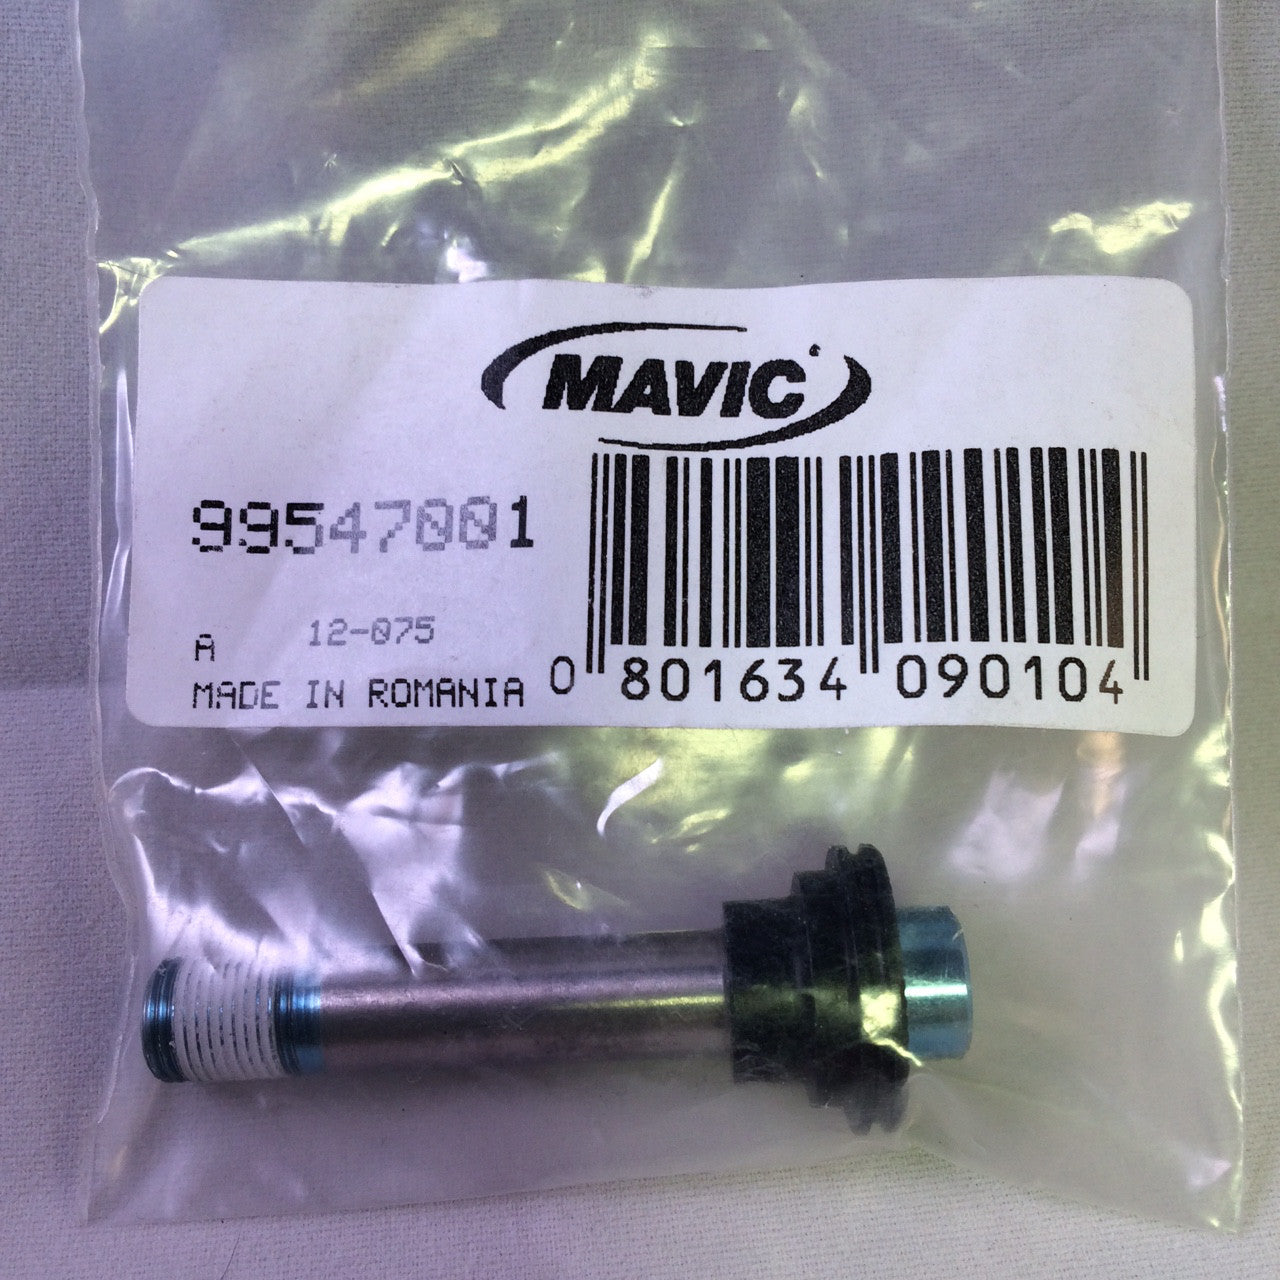 Mavic Rear Axle Bolt Screw - 99547001